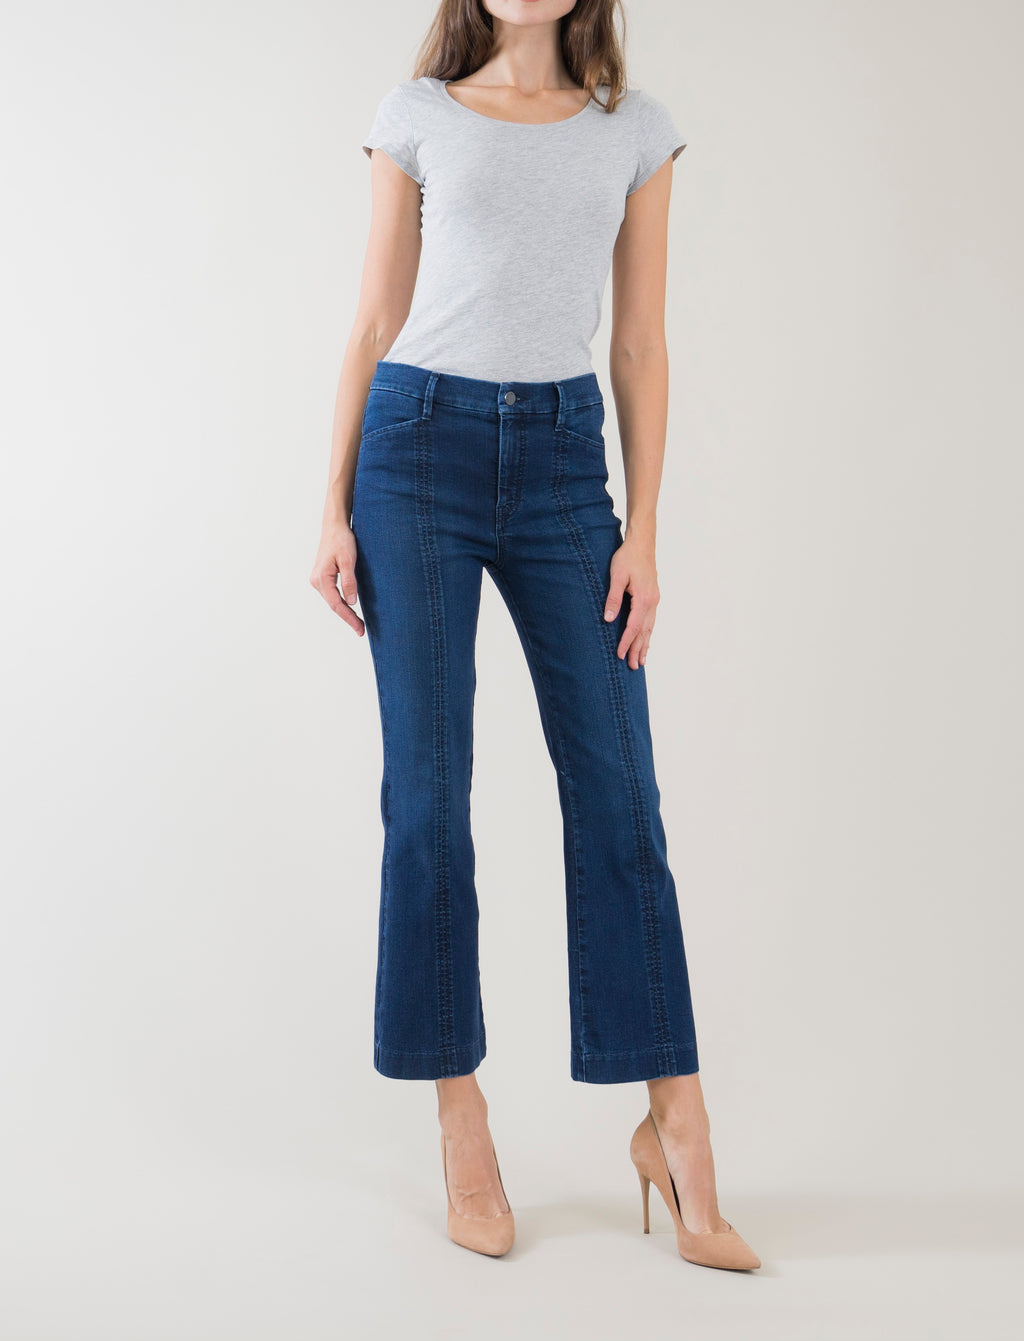 Level 99 Camille Seamed Kick Flare Jeans